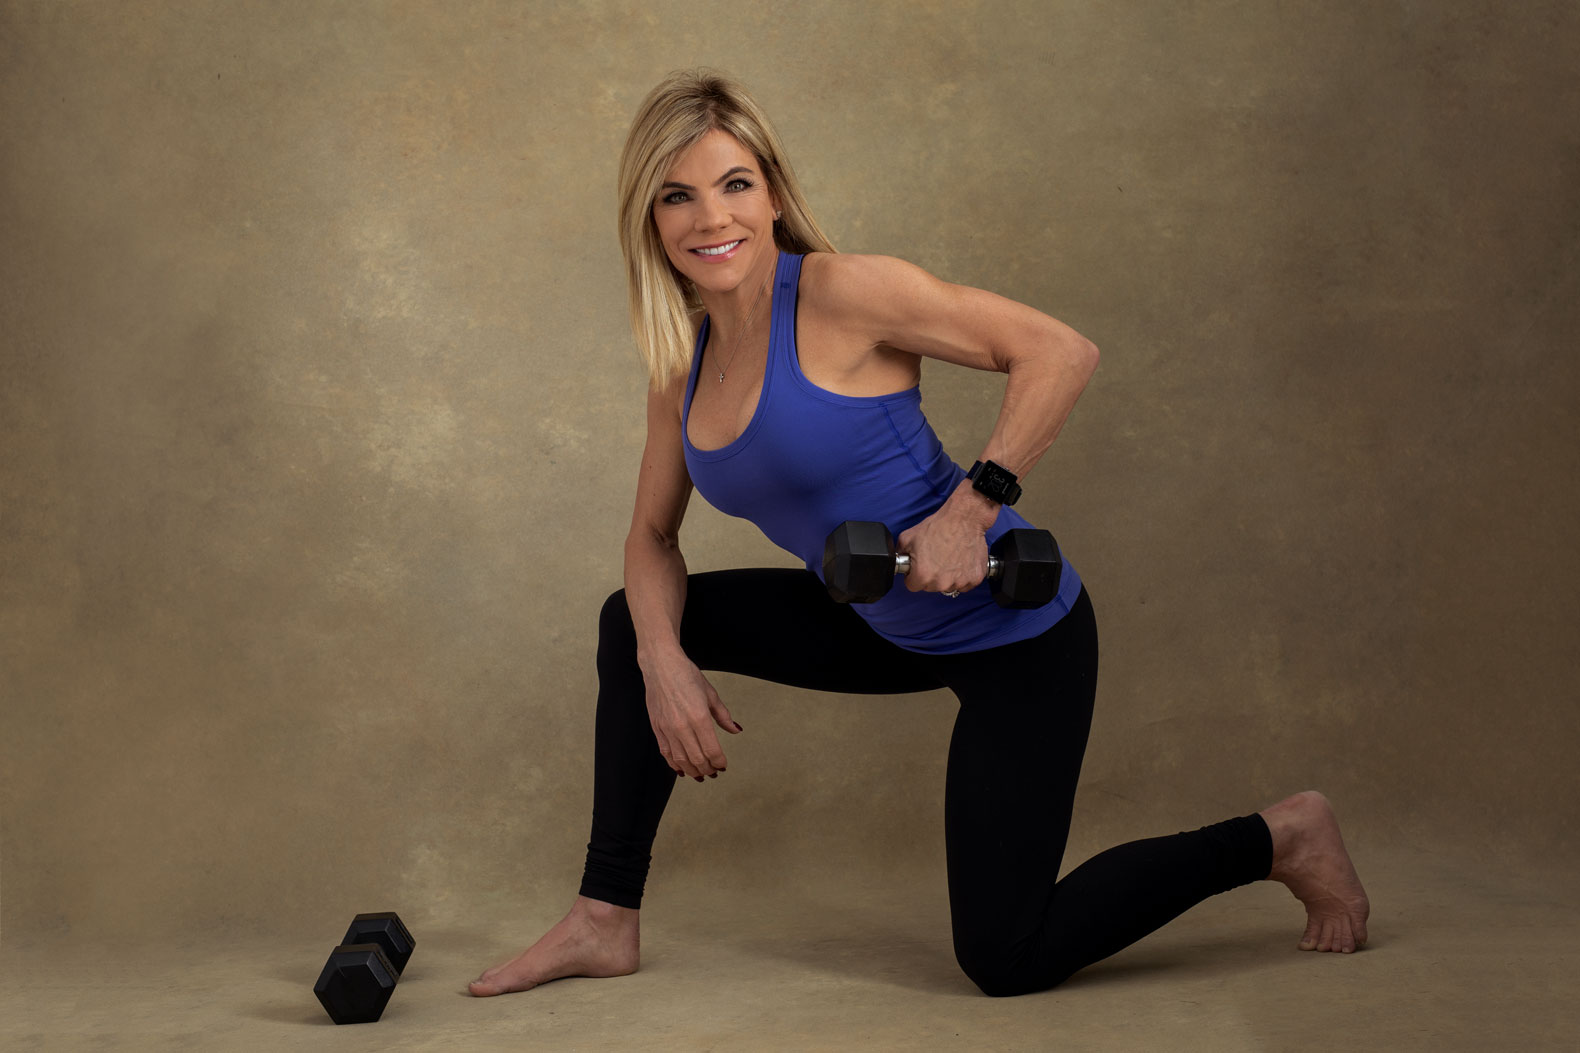 Muscular woman kneeling and lifting weights.